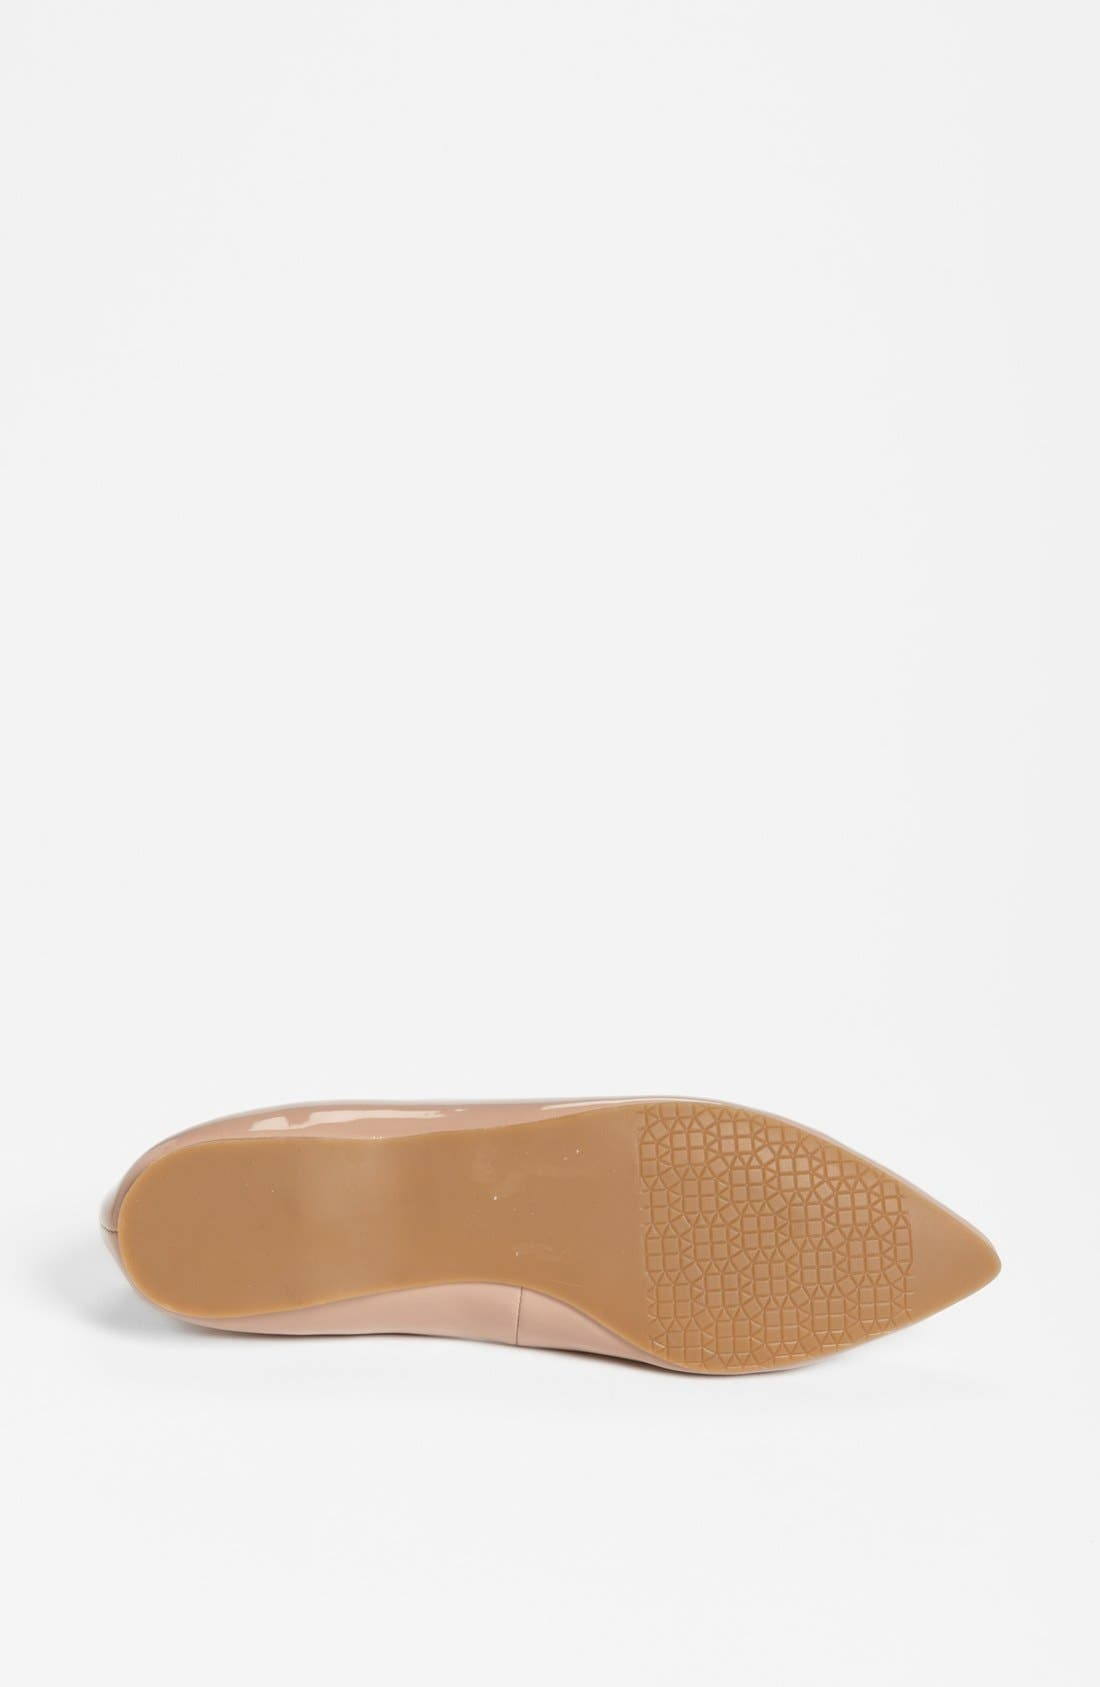 'Moveover' Pointy Toe Flat,                             Alternate thumbnail 48, color,